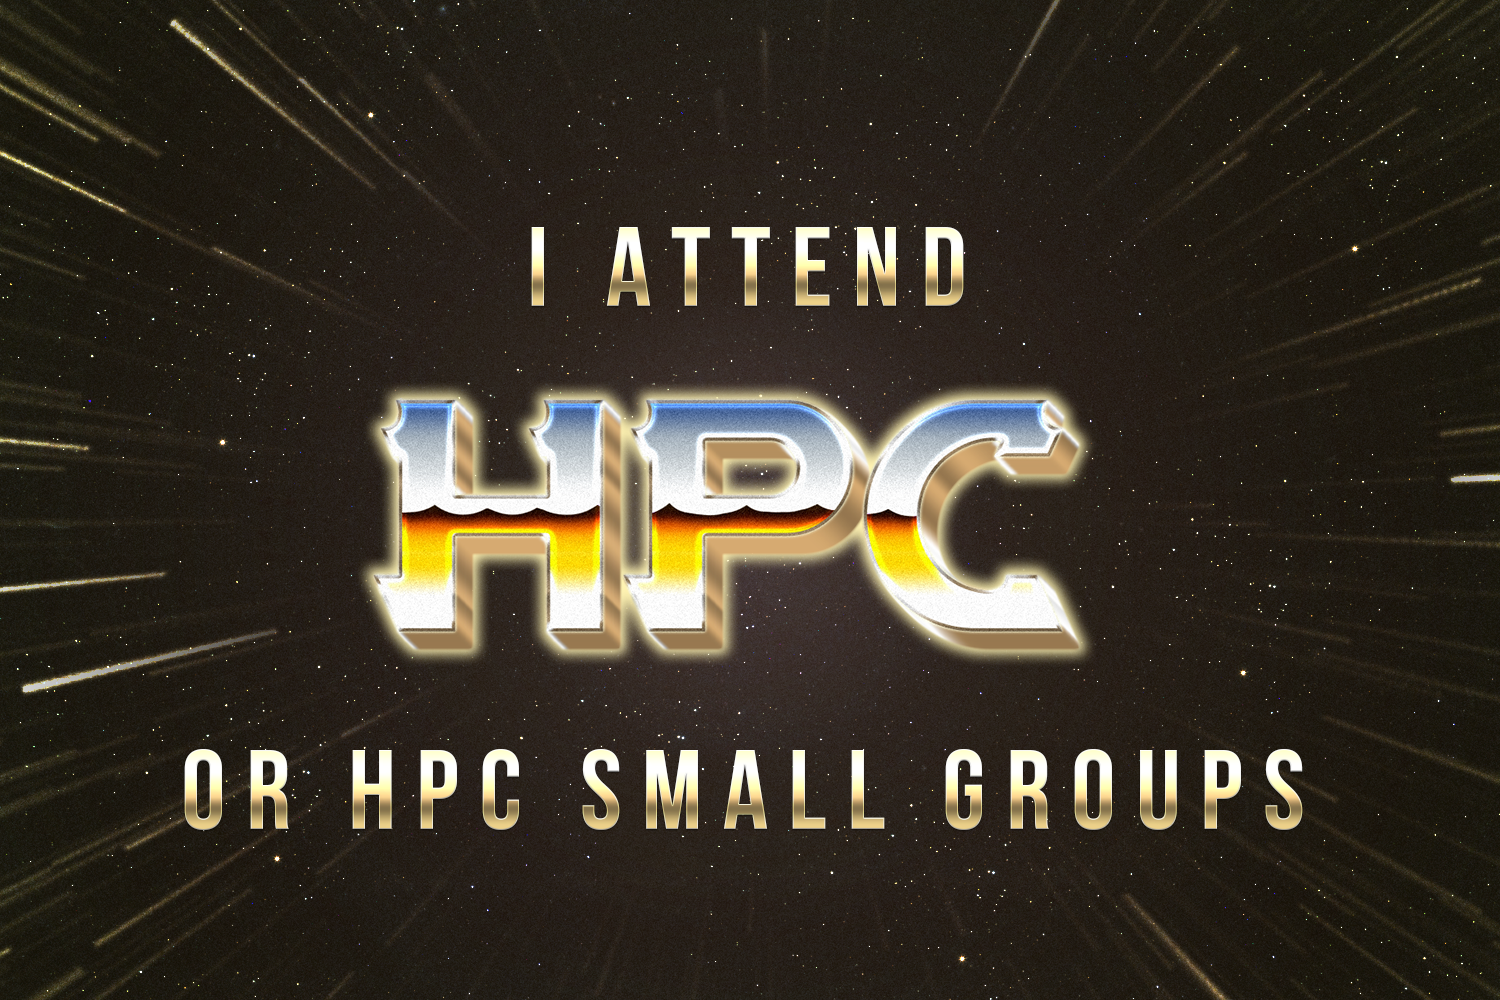 I Attend HPC.png